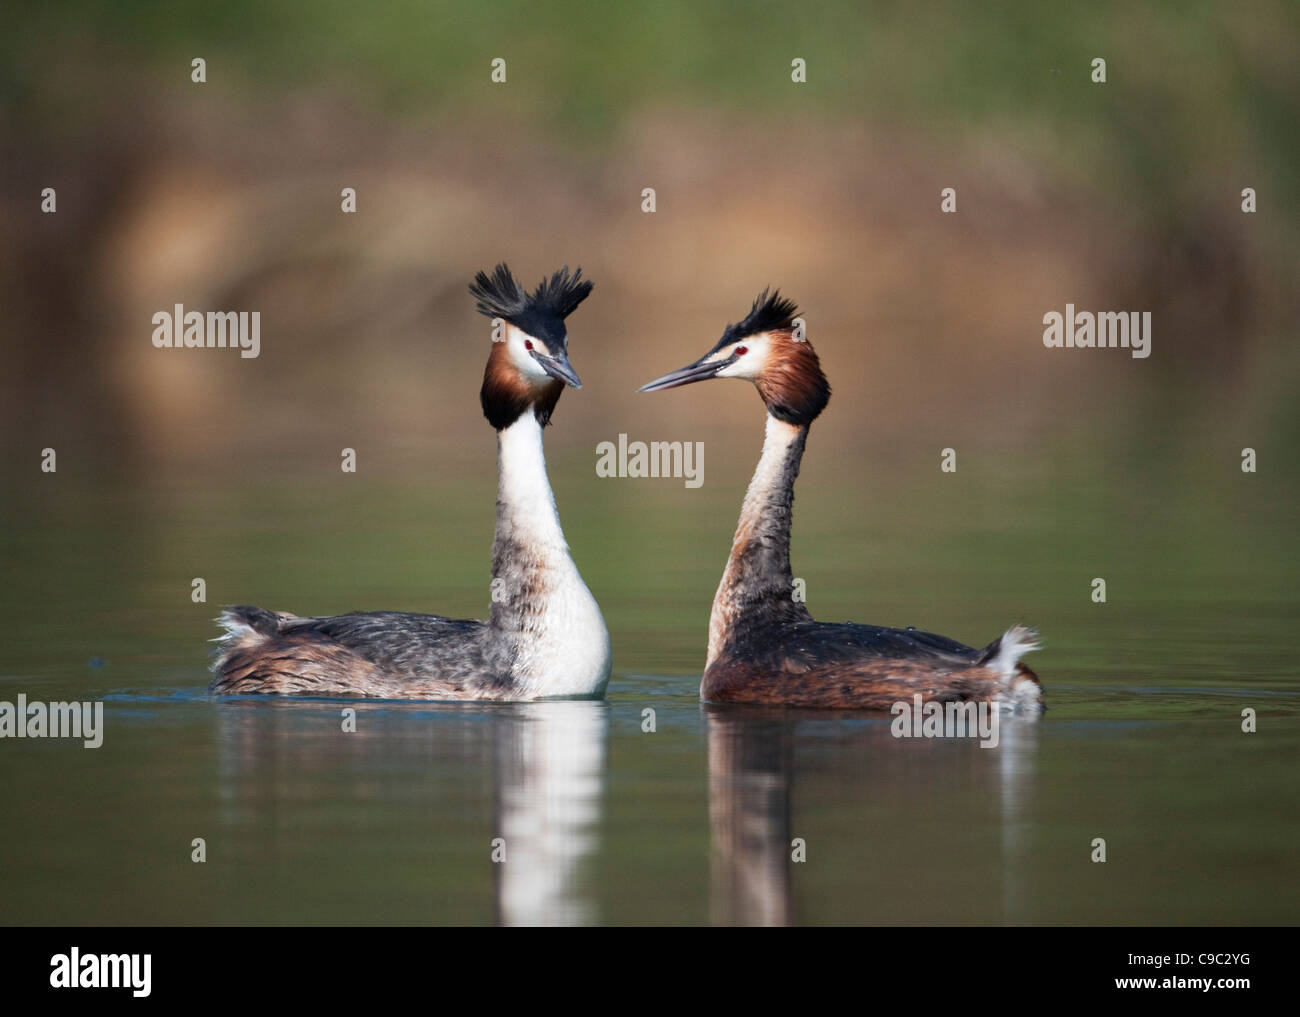 Great crested grebes performing greeting display UK - Stock Image